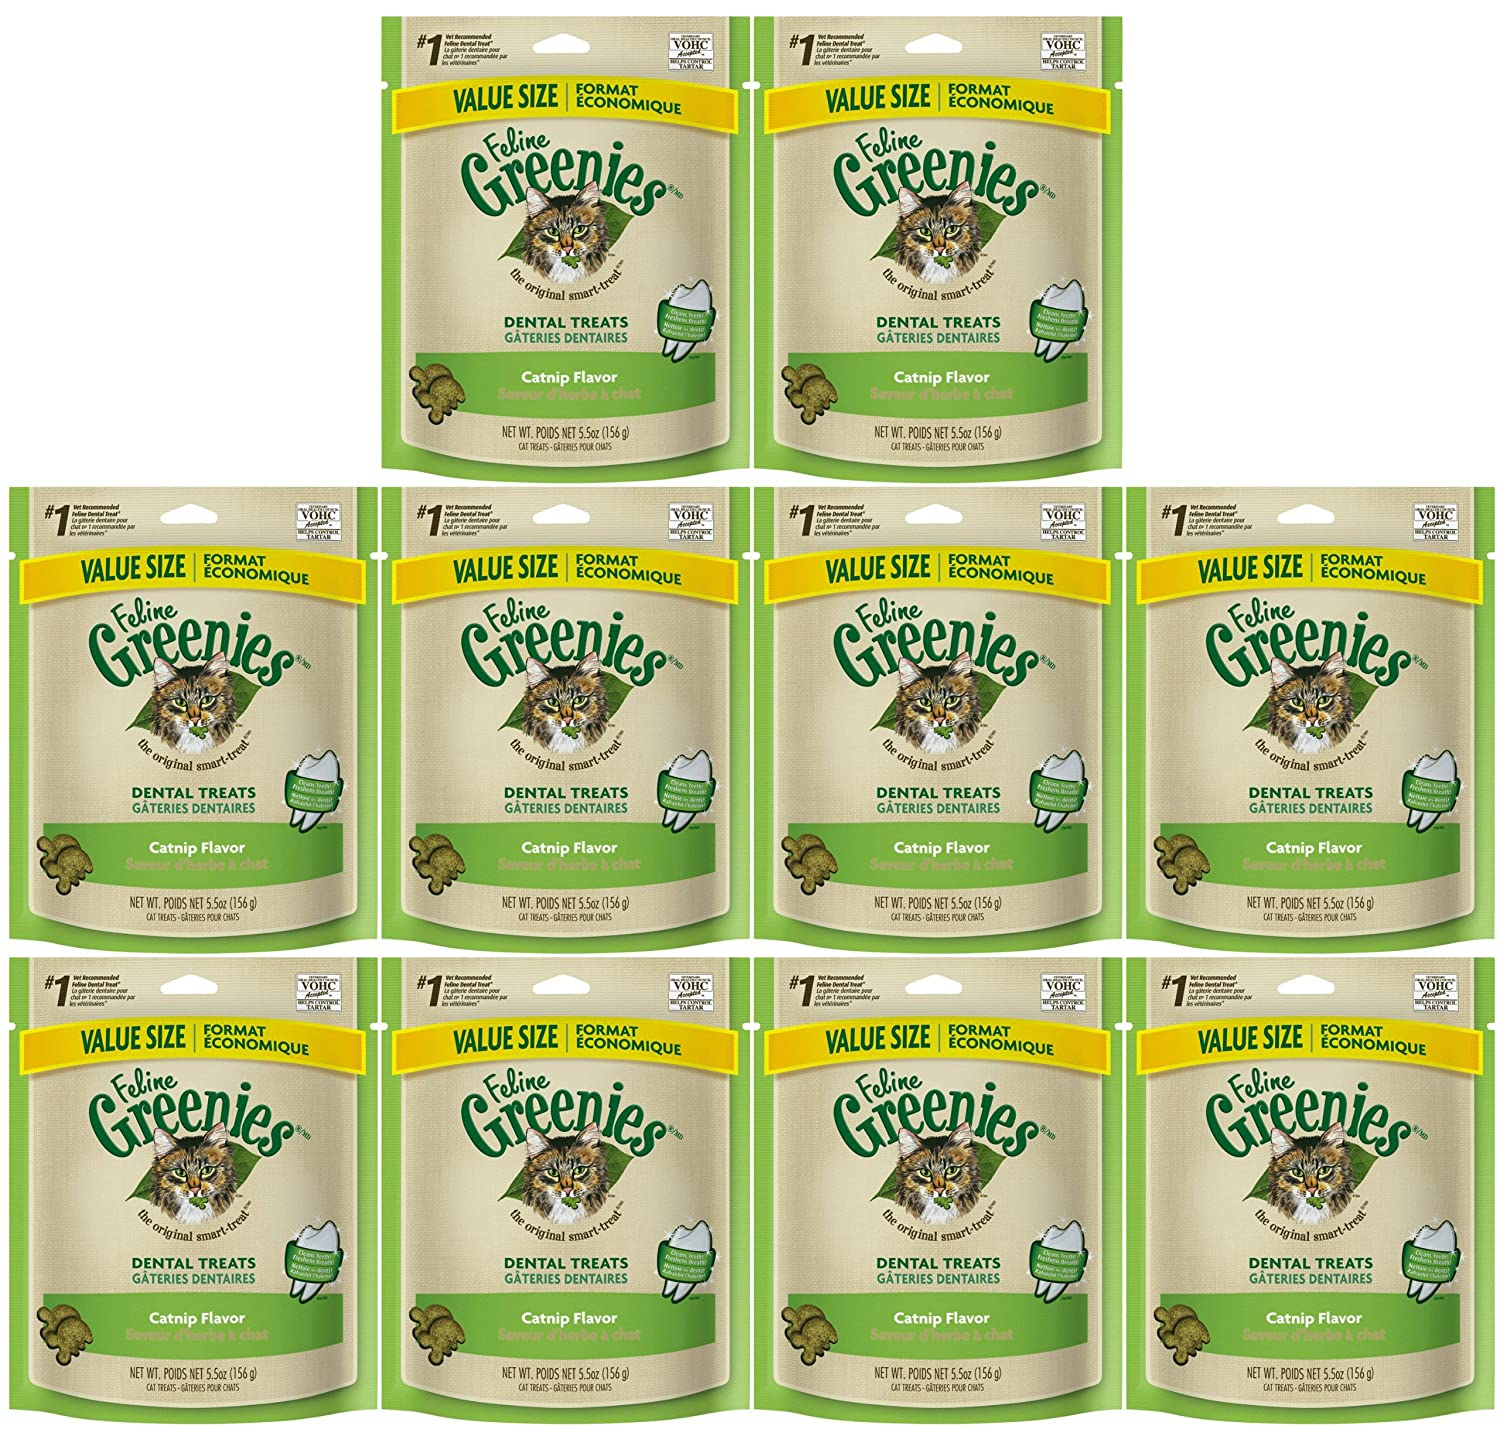 GREENIES Feline Dental Treat for Cats, Catnip Flavor, 5.5oz 10-PACK